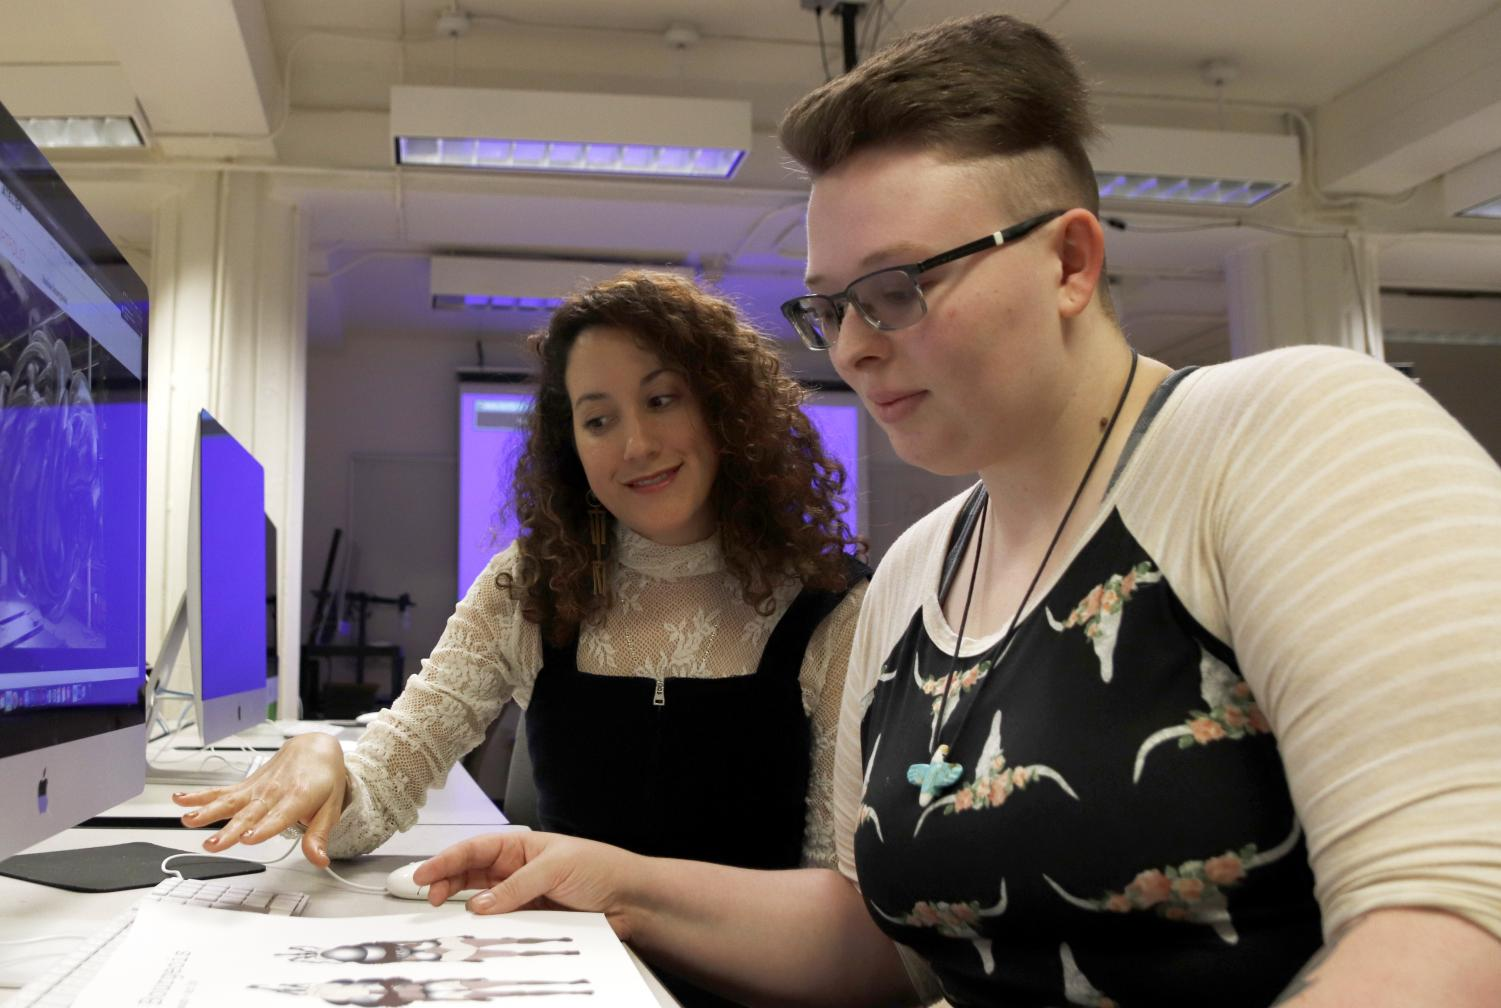 Cristina Molina, assistant professor of new media and animation, shows Sierra Arbaugh, a sophomore art major, works by Louise Bourgeois in class. Inspiration from her mom, aunts and grandmothers helped Molina grow in her artistic endeavors.